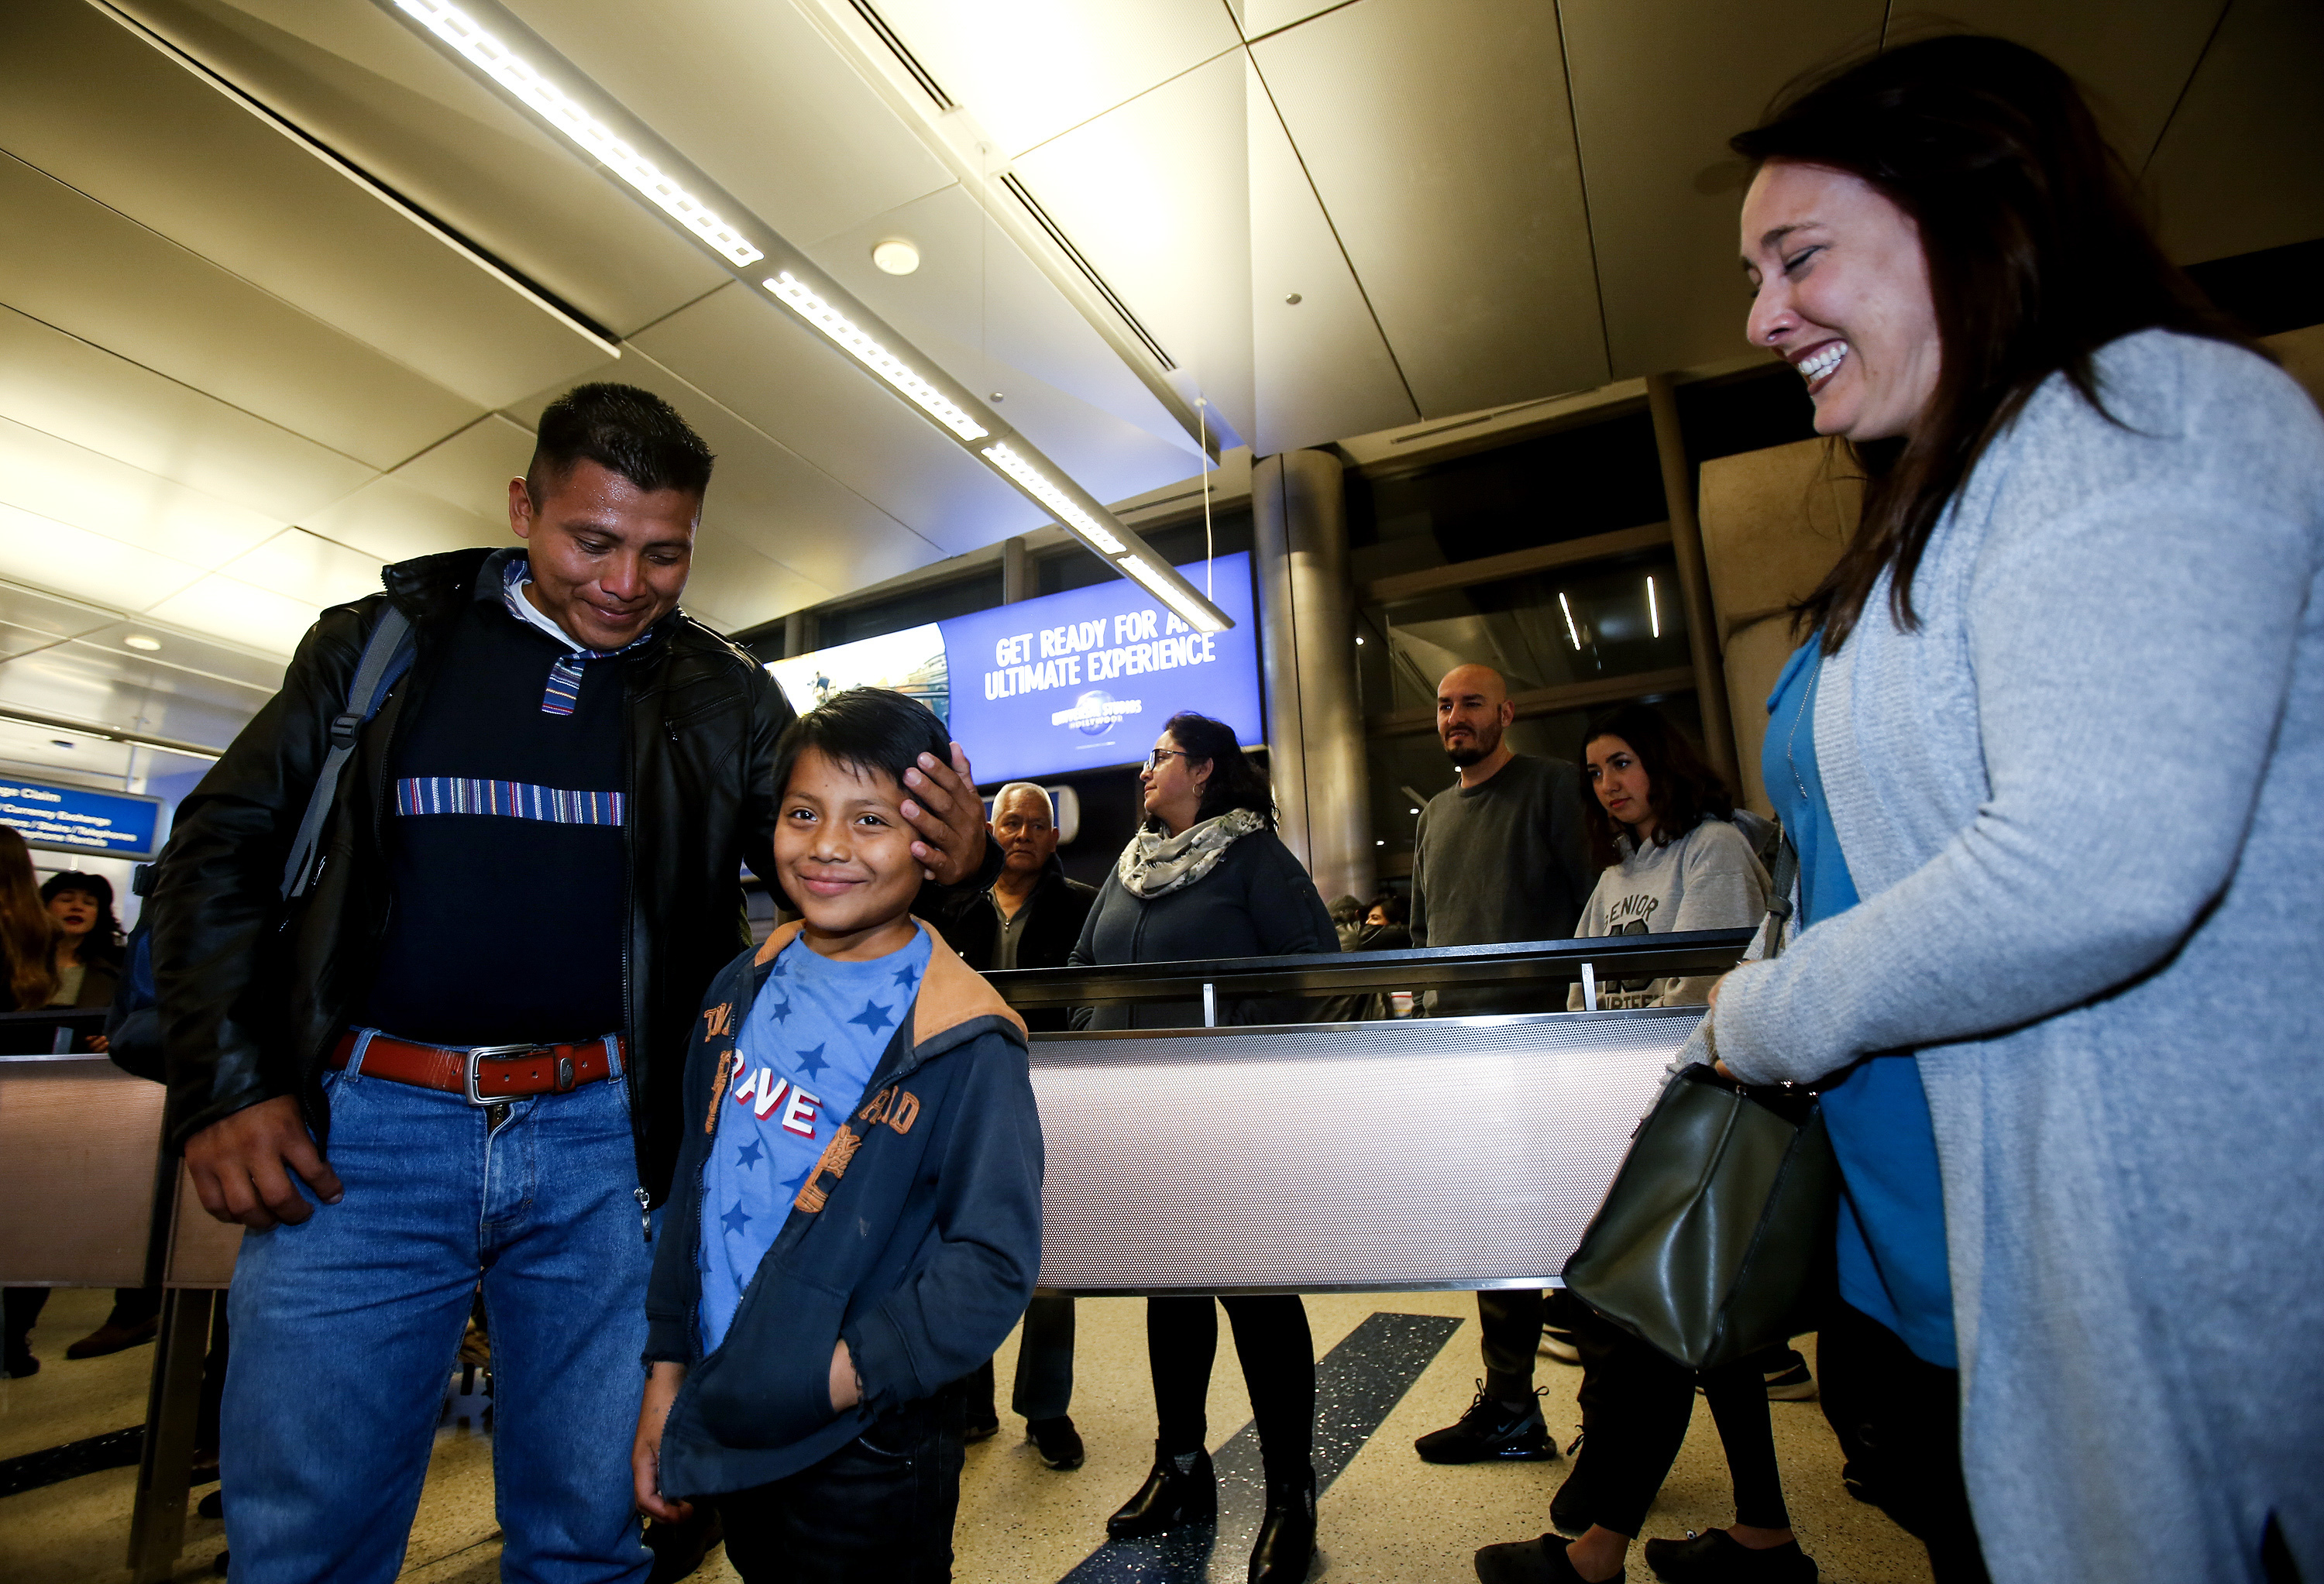 David Xol-Cholom, left, of Guatemala reunites with his son Byron, as Holly Sewell, right, sponsor mom to Bryon, looks on at Los Angeles International Airport after being separated about one and half year ago during the Trump administration's wide-scale separation of immigrant families, Wednesday, Jan. 22, 2020, in Los Angeles.